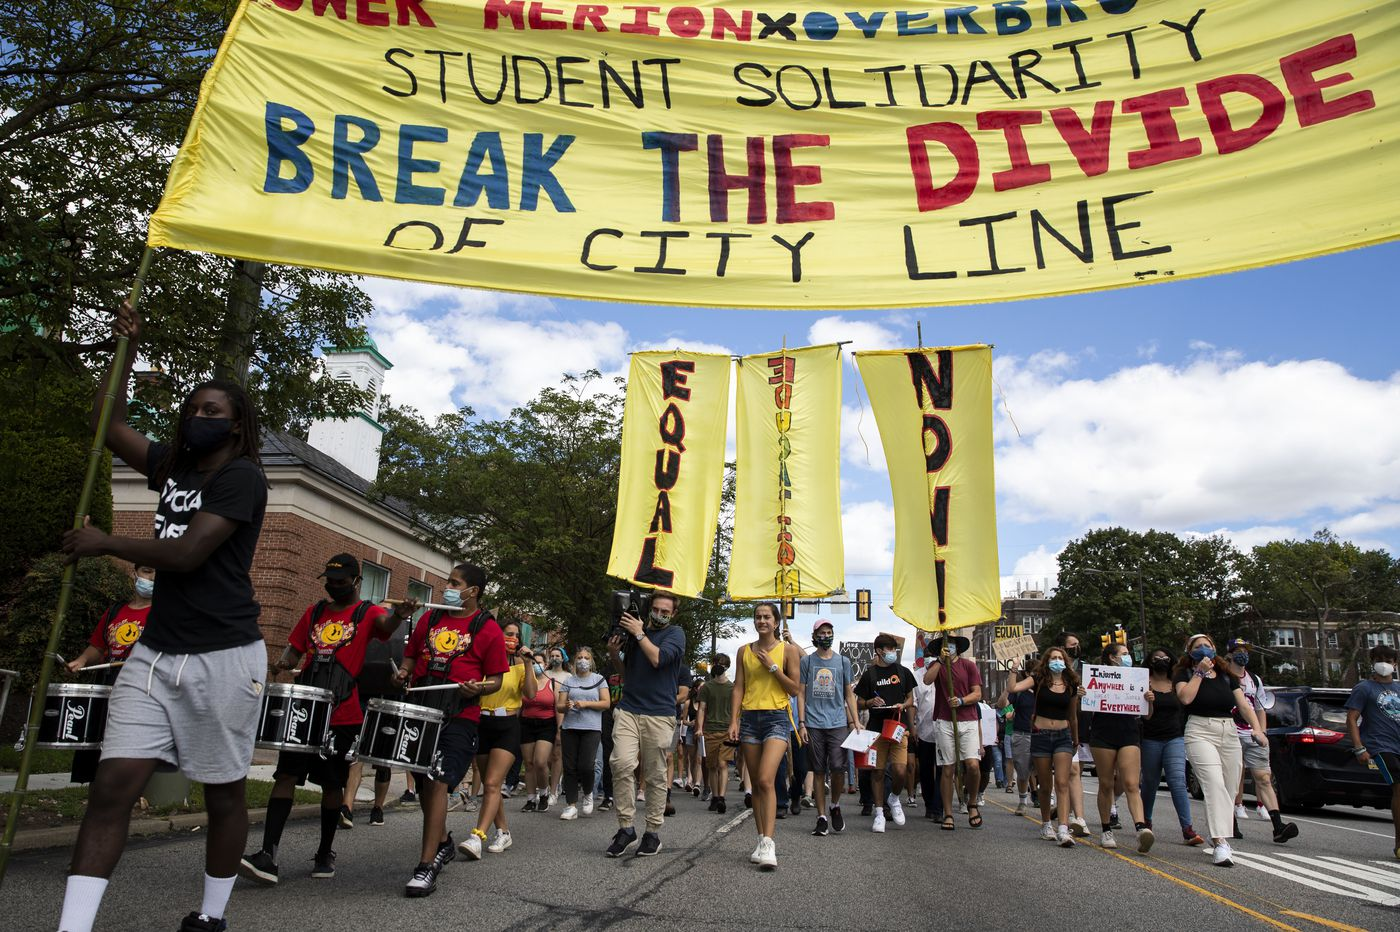 Students protest education inequity in march from Lower Merion to Philly's Overbrook High School